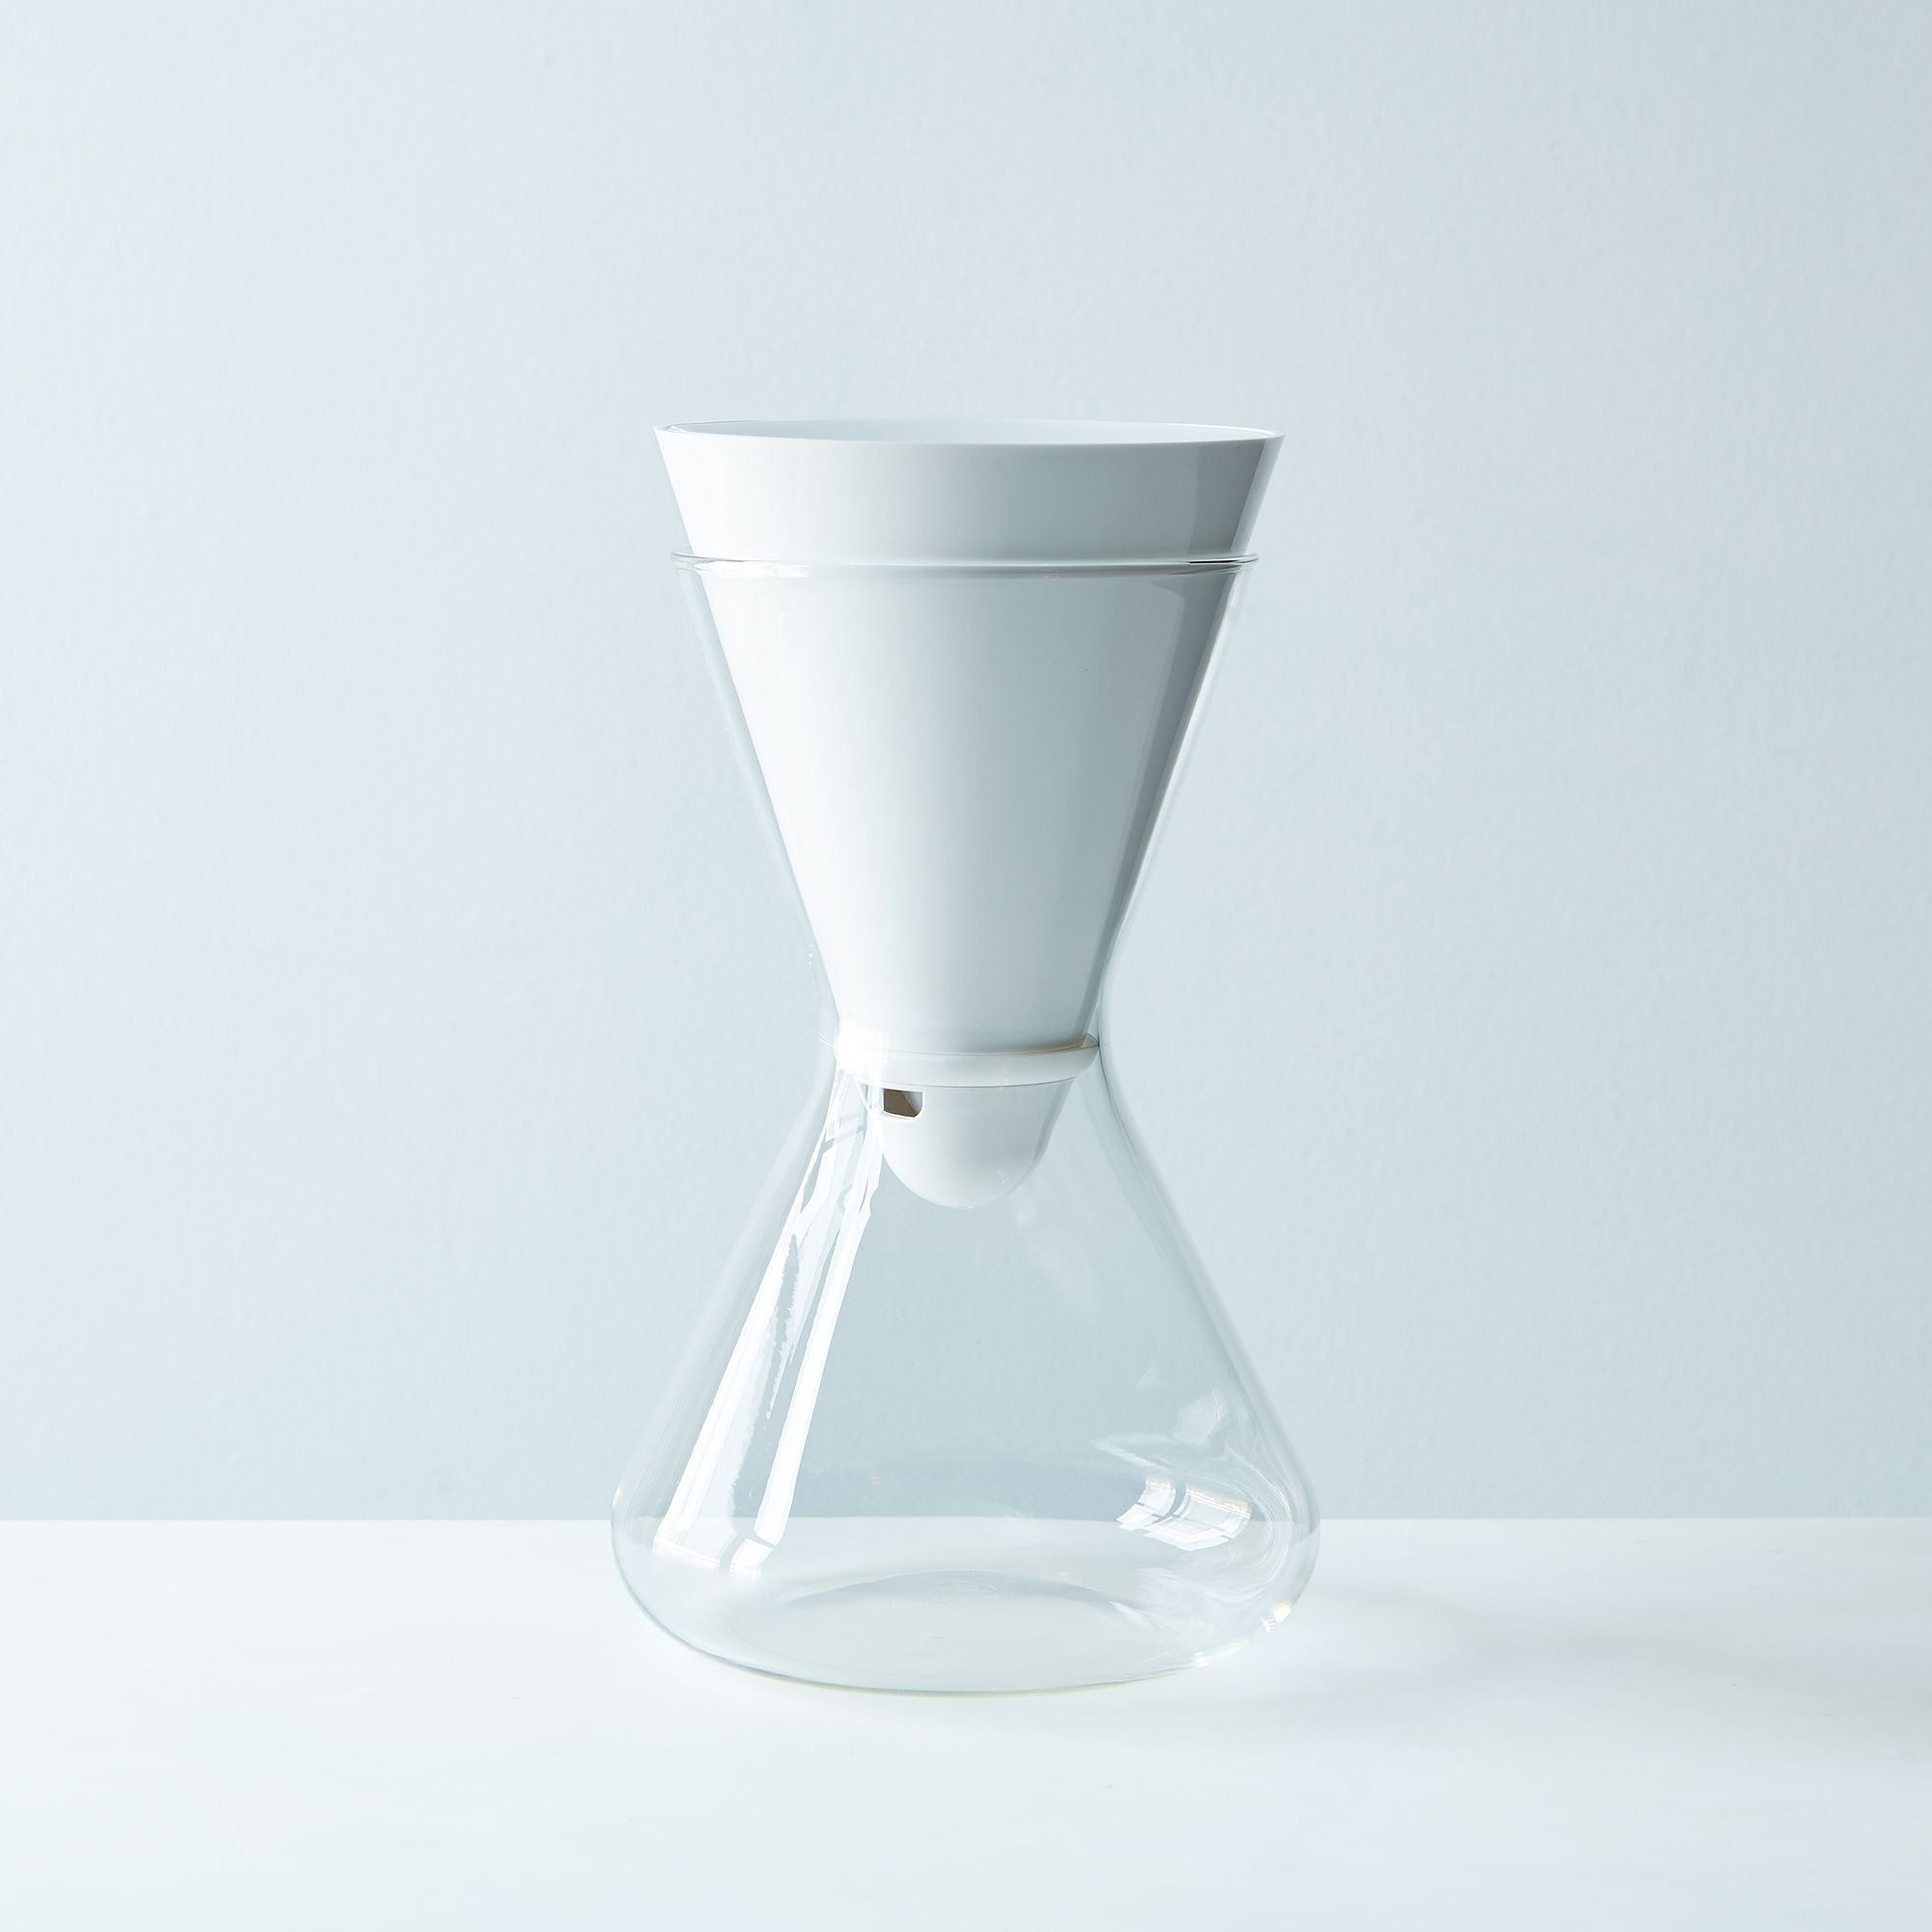 D7a676a4 0eda 4575 a00f b7520a424444  soma water carafe and filter provisions mark weinberg 30 06 14 0192 silo